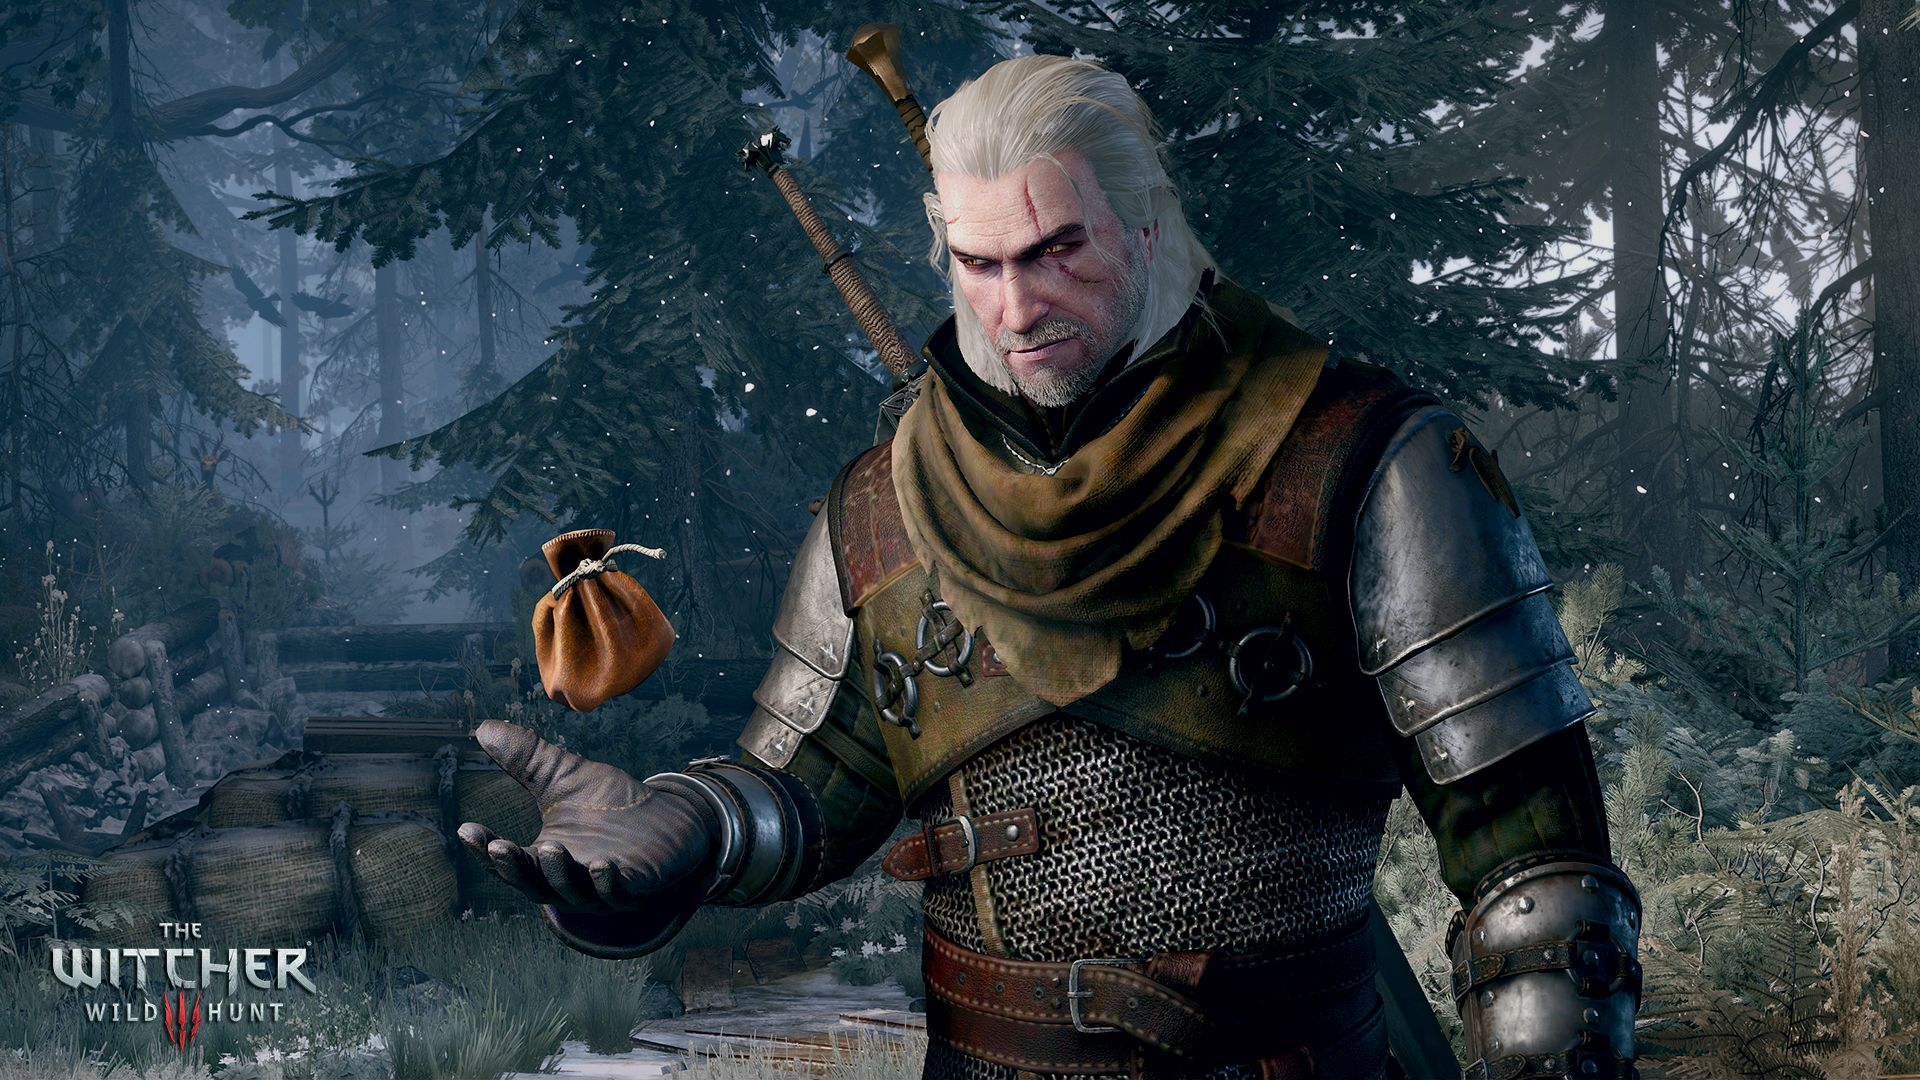 The_Witcher_3_Wild_Hunt_Getting_paid-best_part_of_the_job